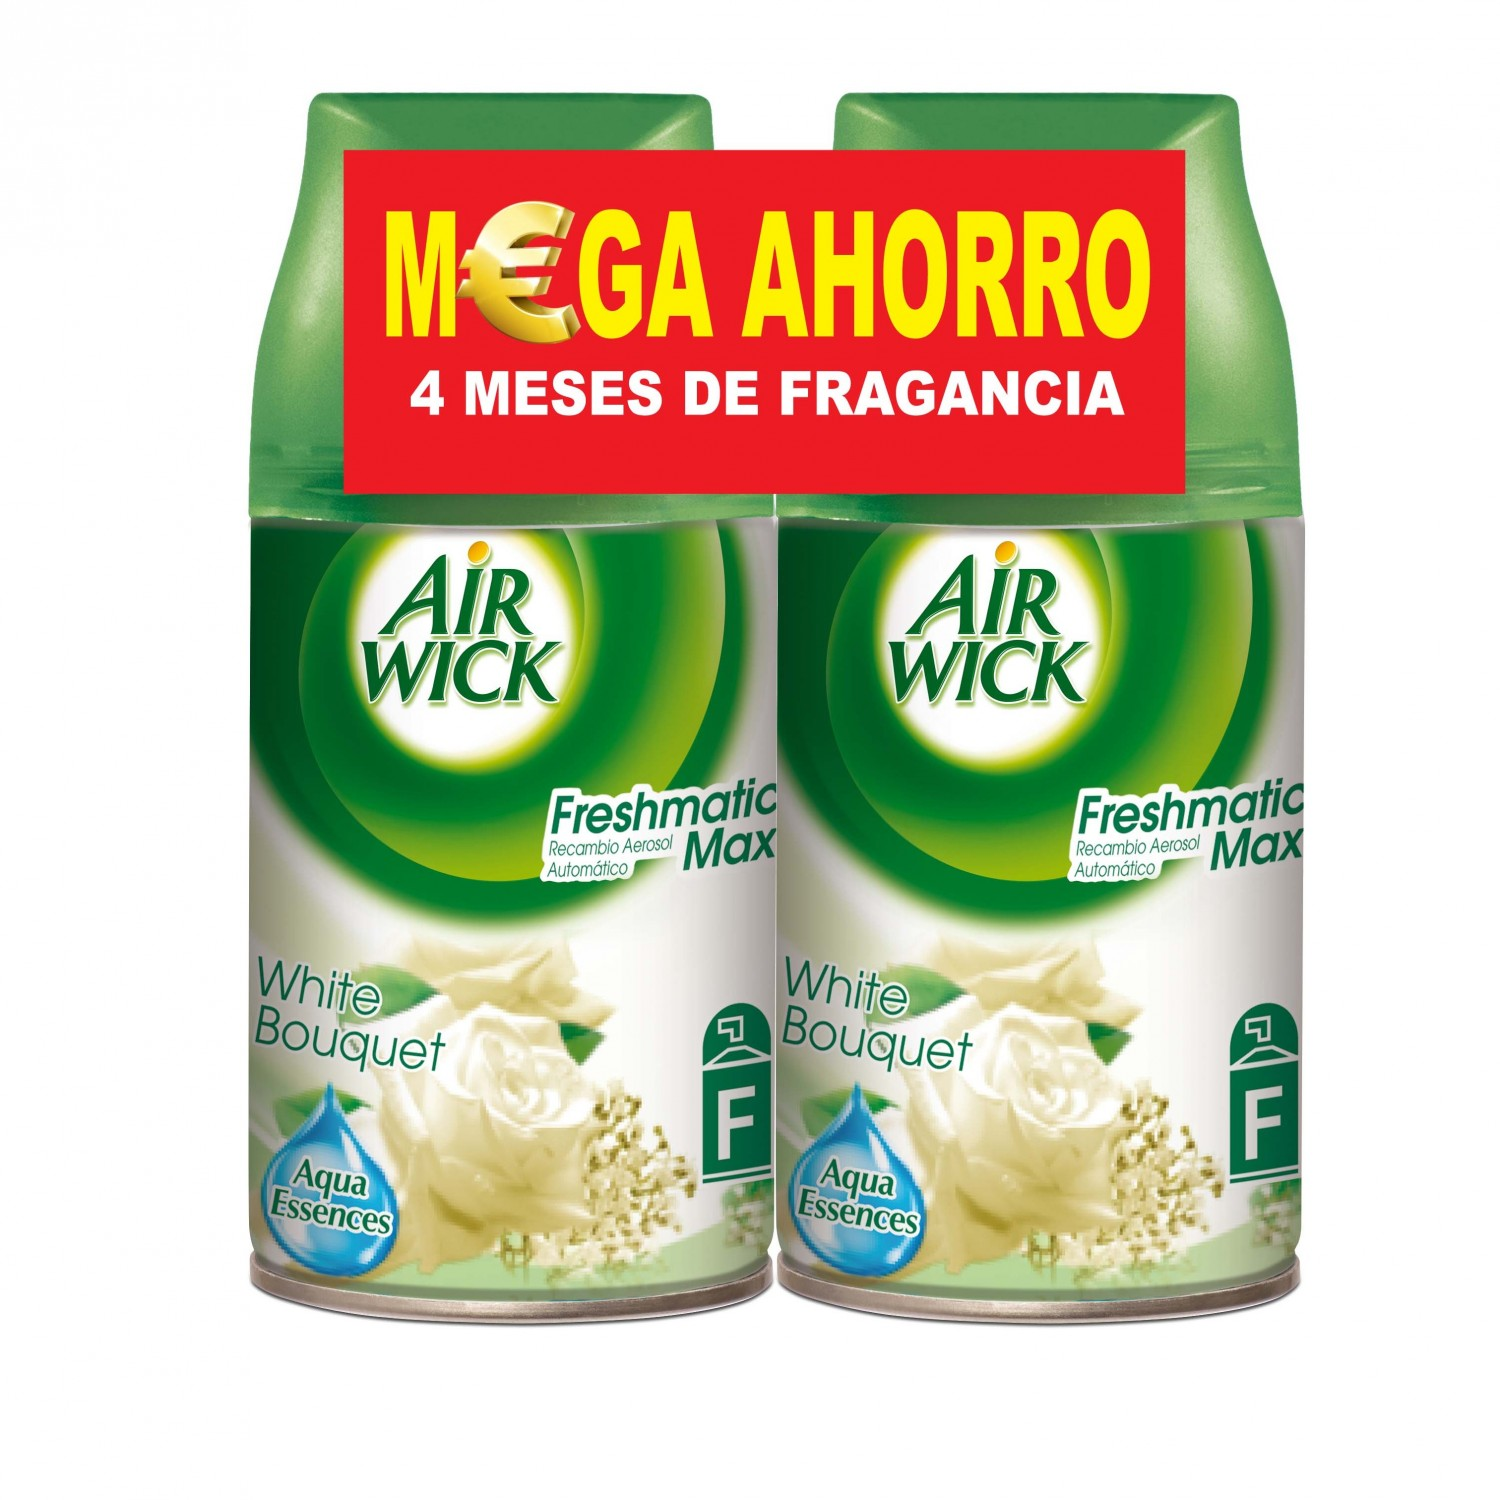 Air Wick fresh matic ambientador automatico white bouquet pack ahorro ades 2